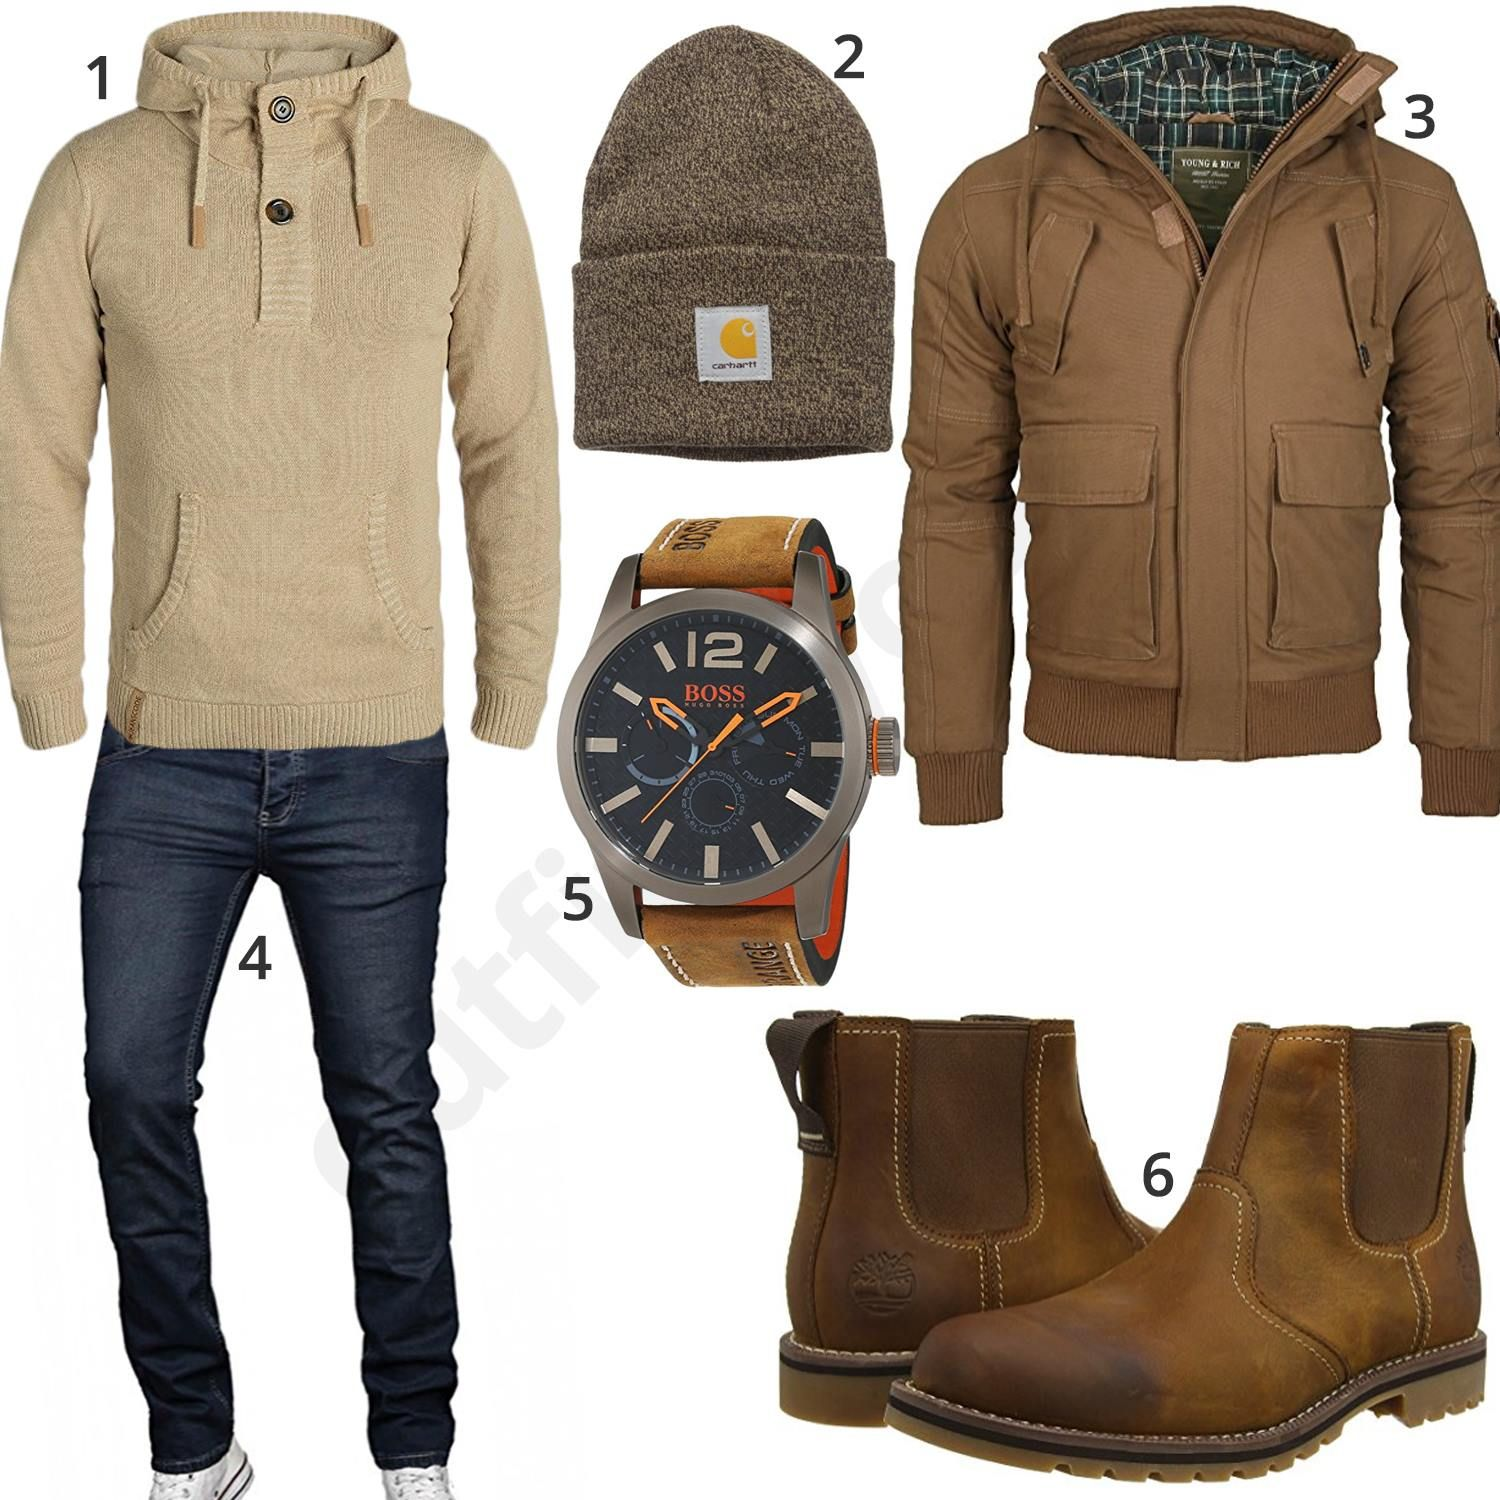 warmes winter outfit f r herren mit beigem indicode pullover carhartt m tze young rich jacke. Black Bedroom Furniture Sets. Home Design Ideas